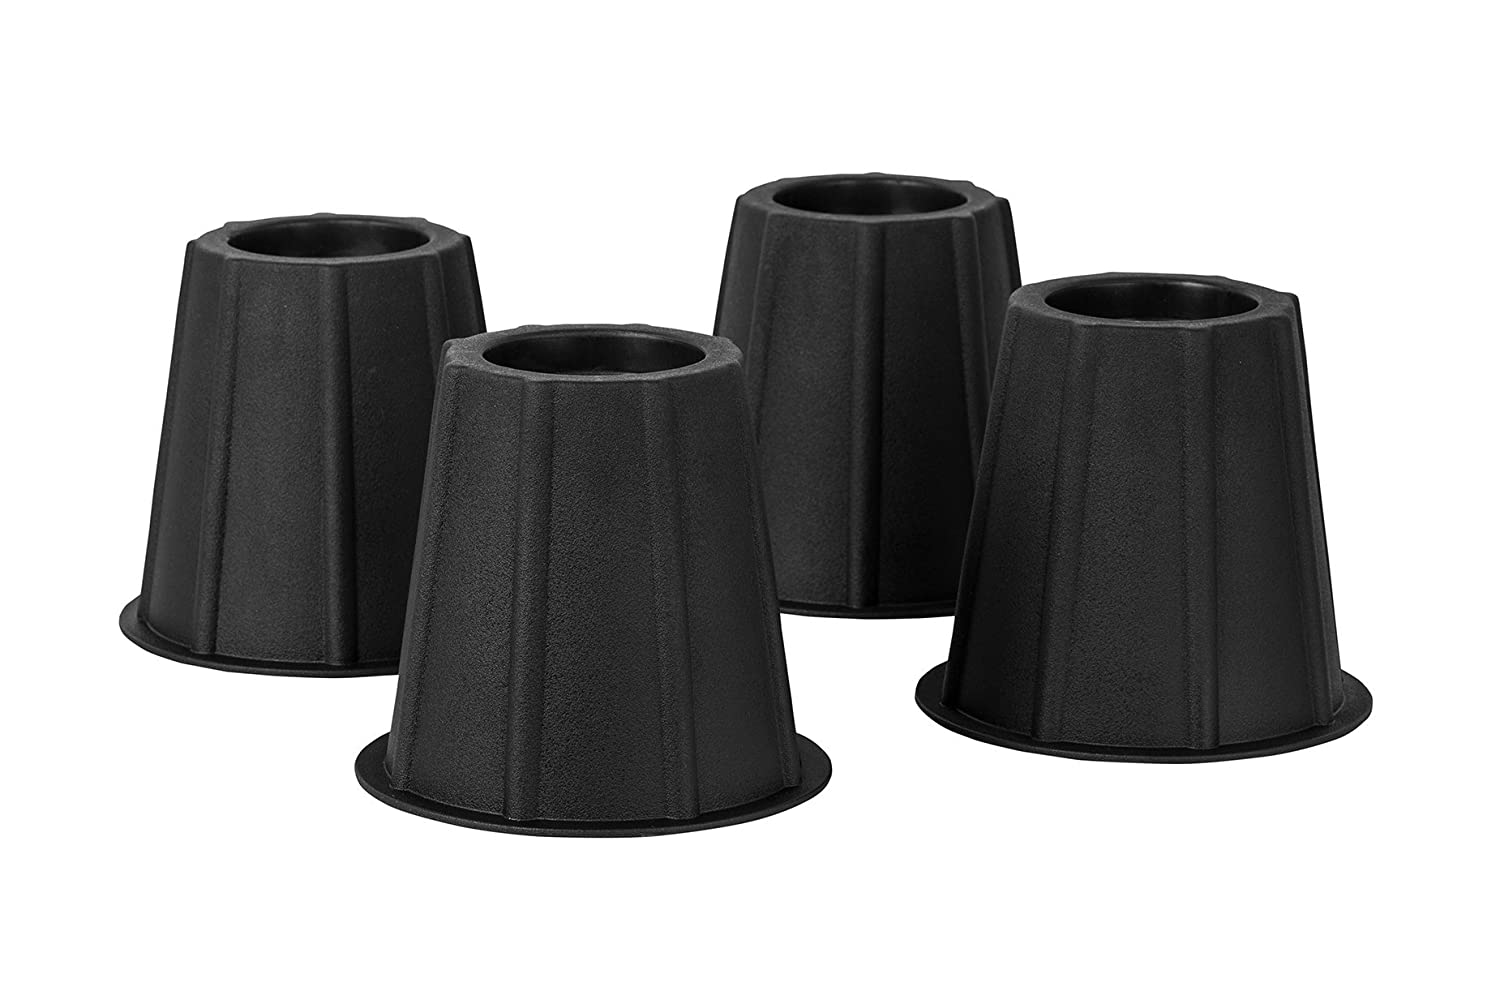 Home-it® 5 to 6-inch SUPER QUALITY bed risers, Black round shaped, bed riser helps you storage under the bed 4-pack